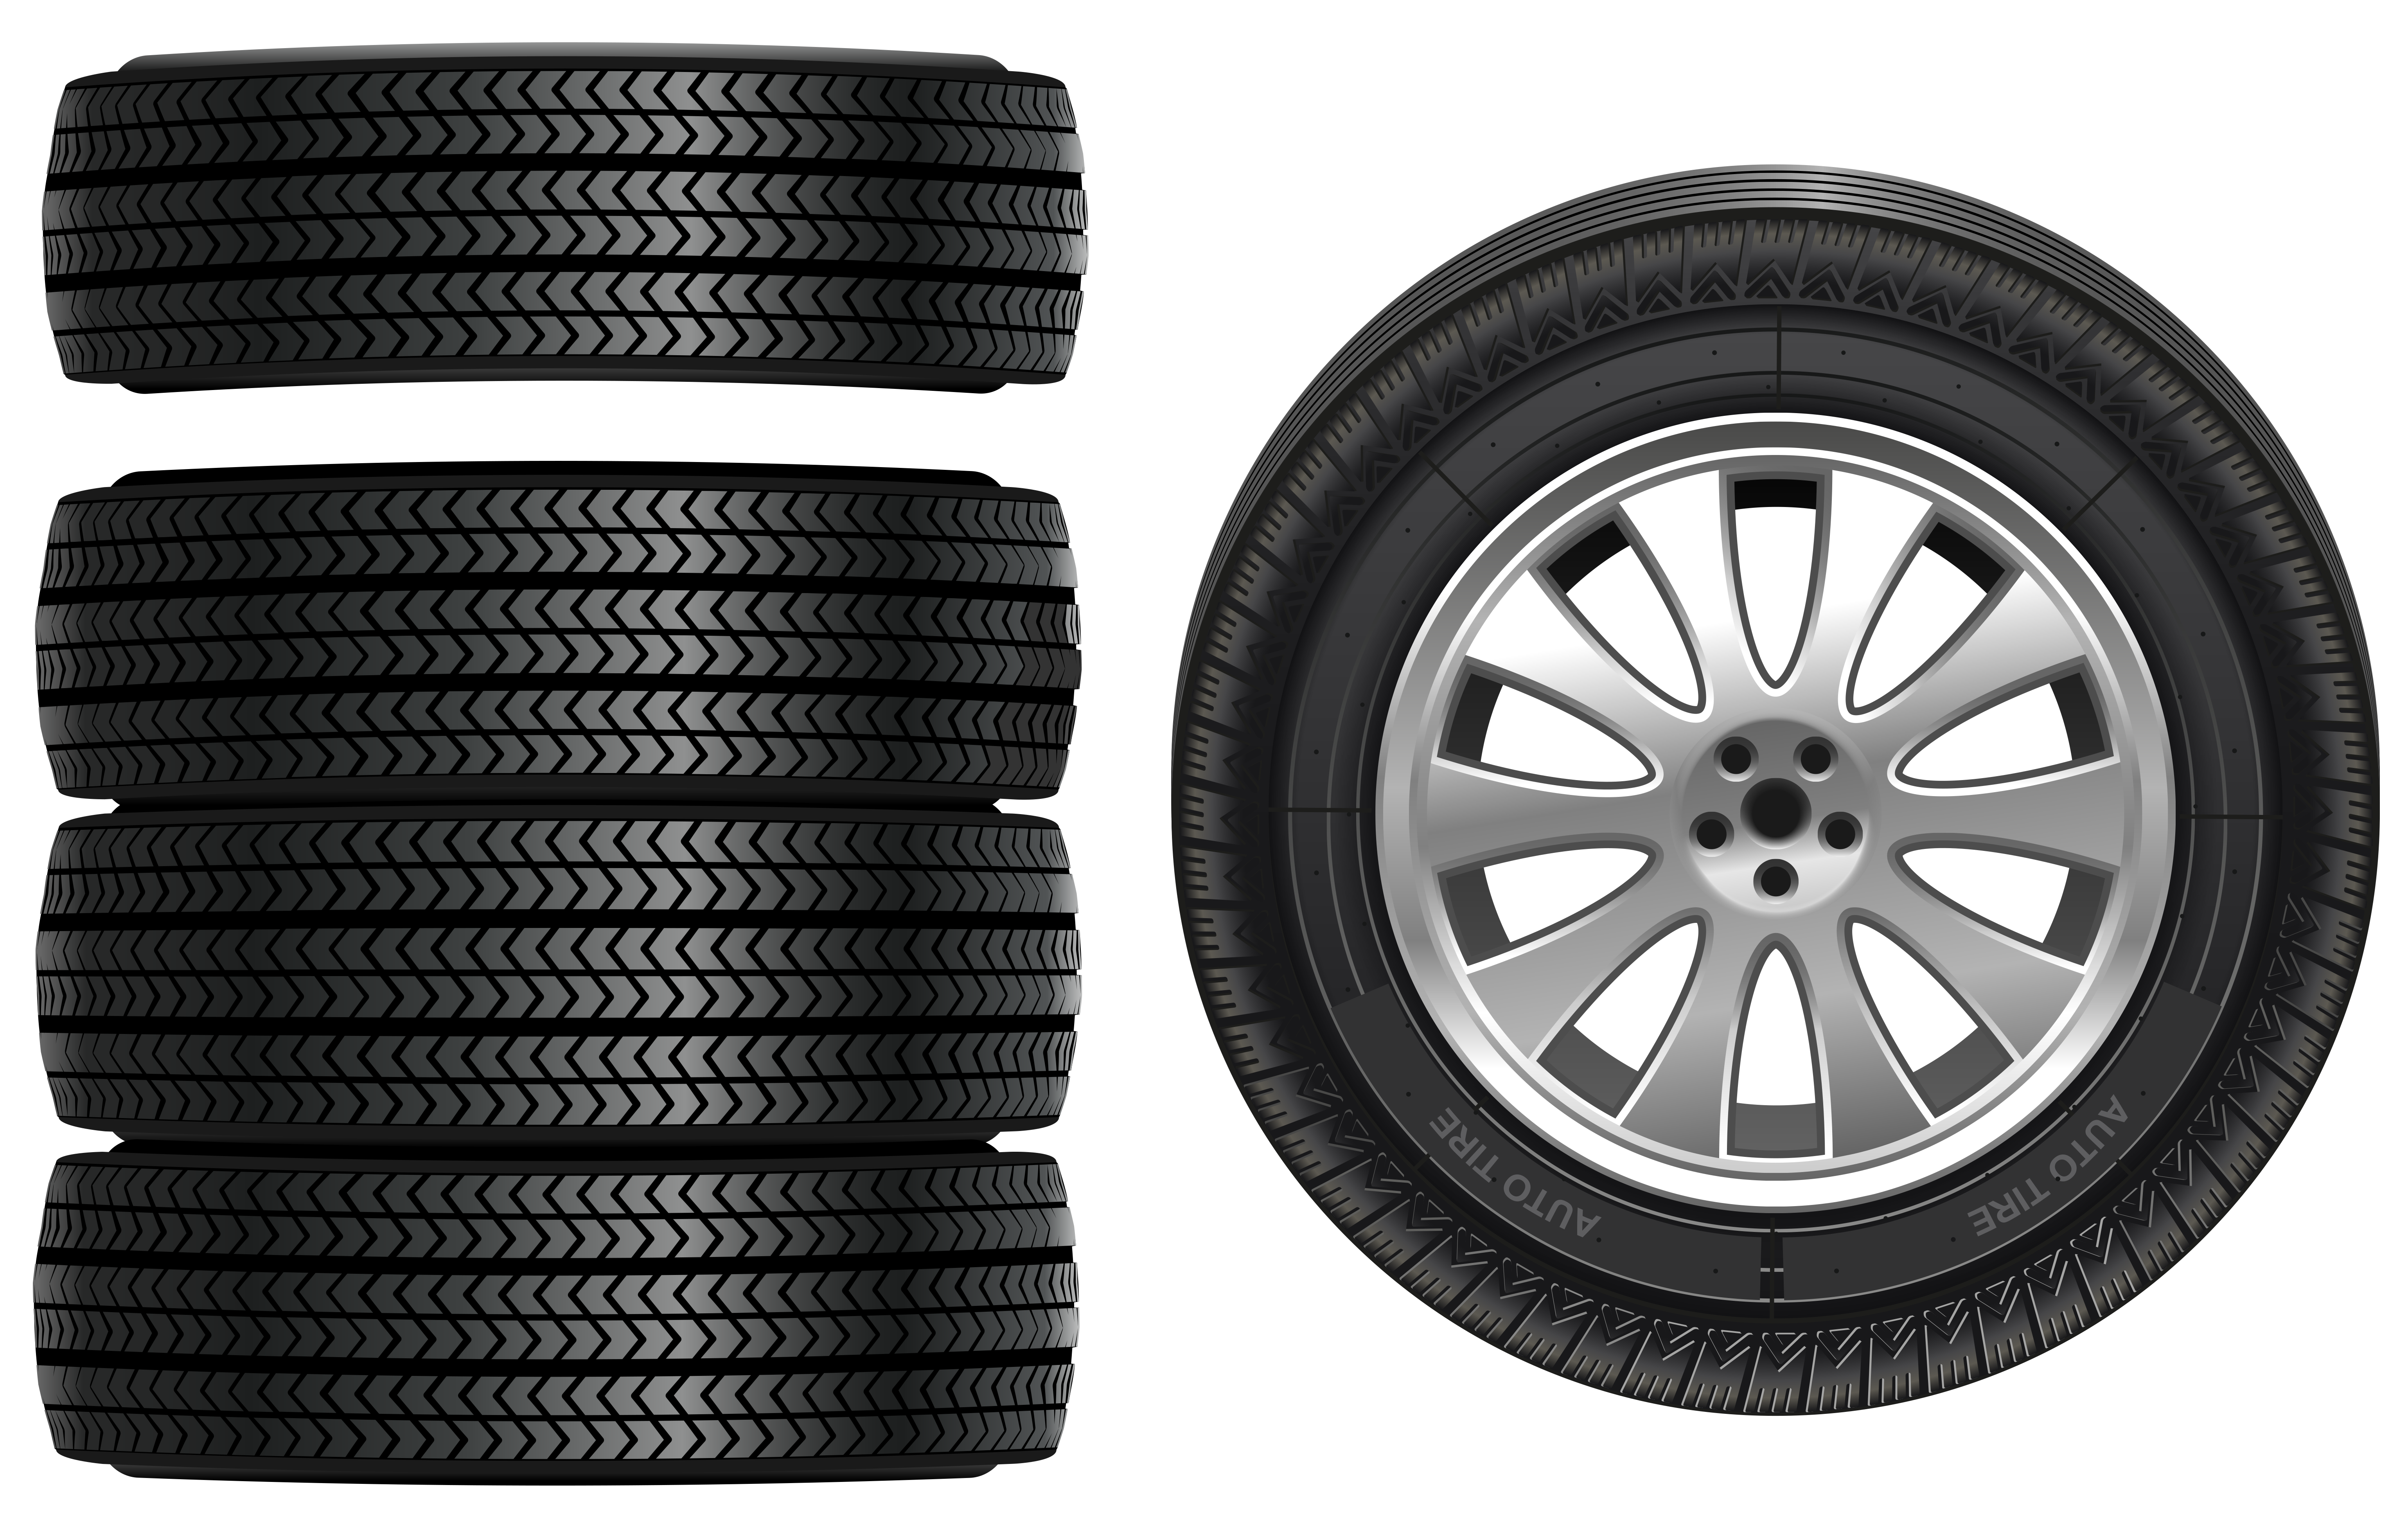 banner black and white stock Tires clipart. Png clip art best